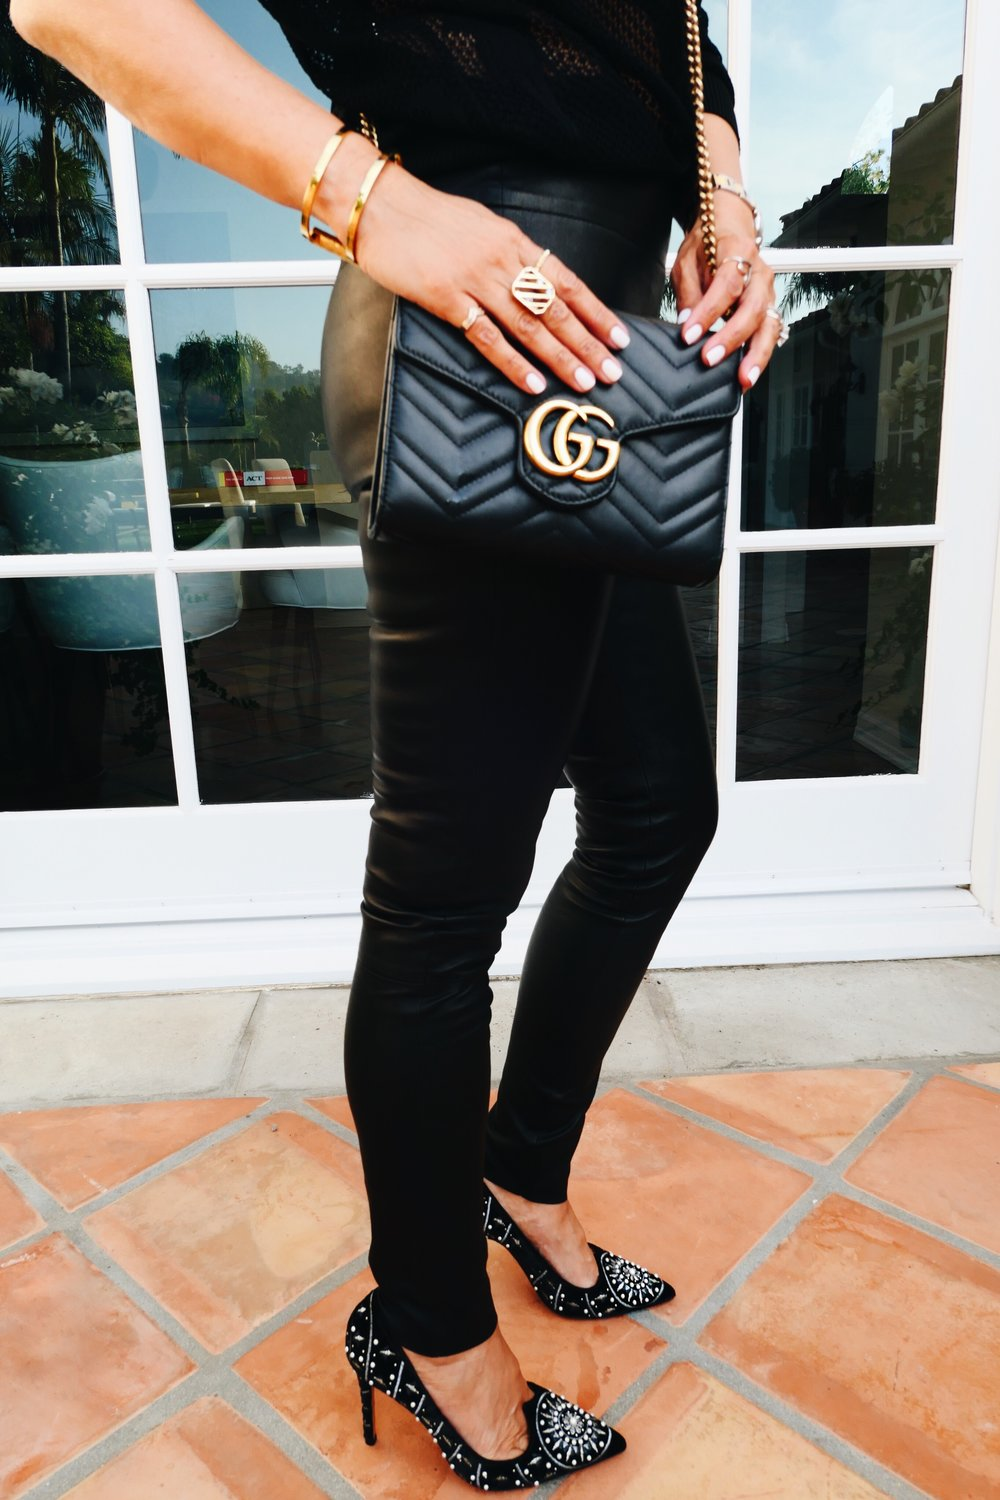 Melissa Meyers + Staci Koonel + Chanel + Aquazurra + Gucci + Tom Ford